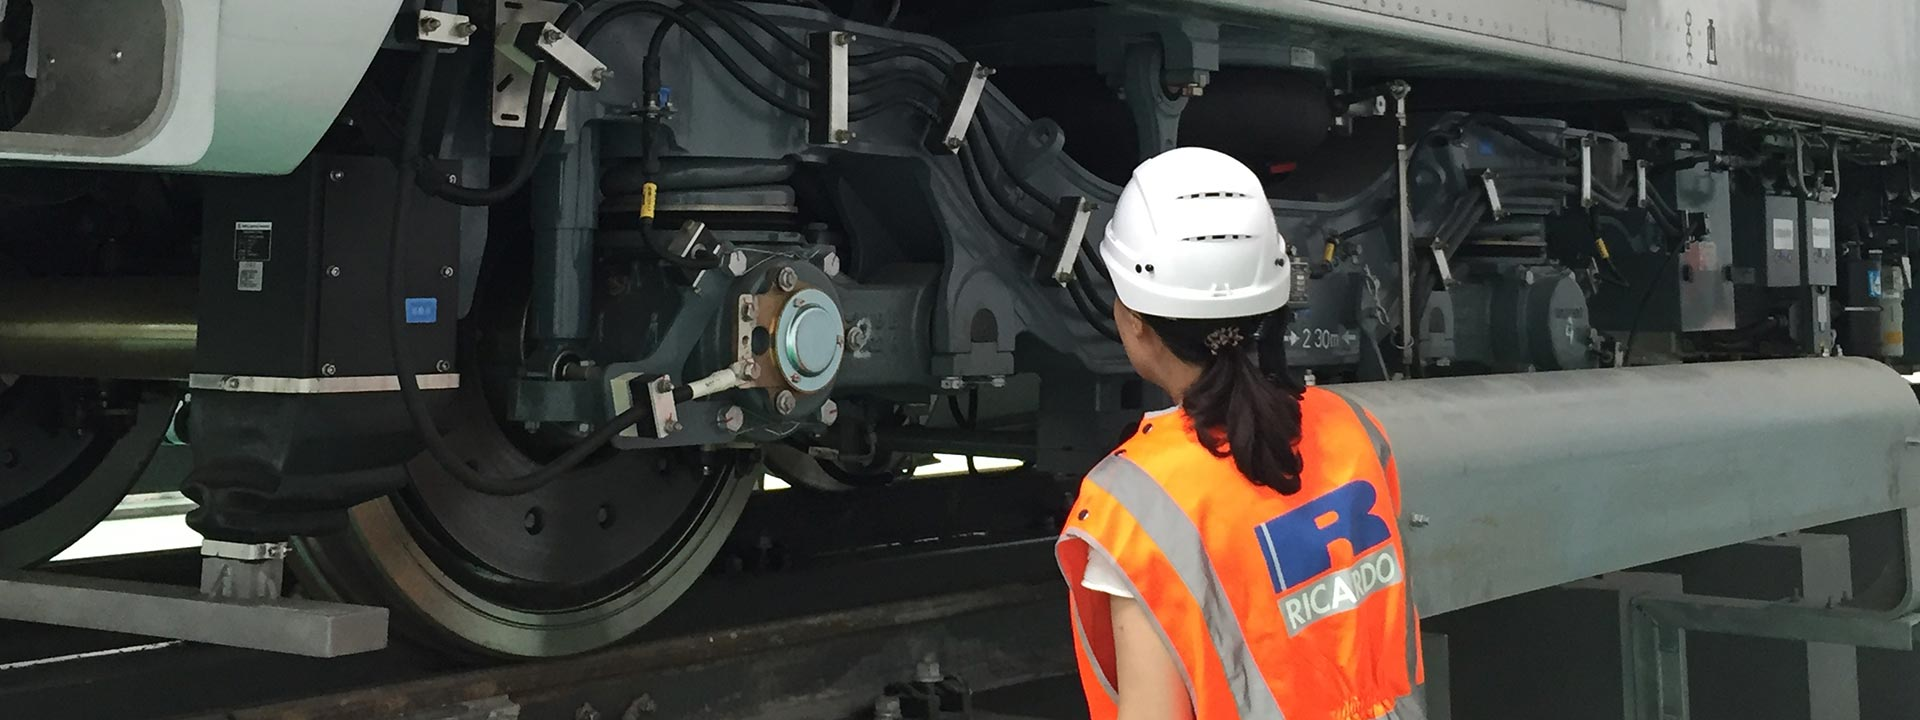 Blog: How mentoring supports diversity in the rail sector